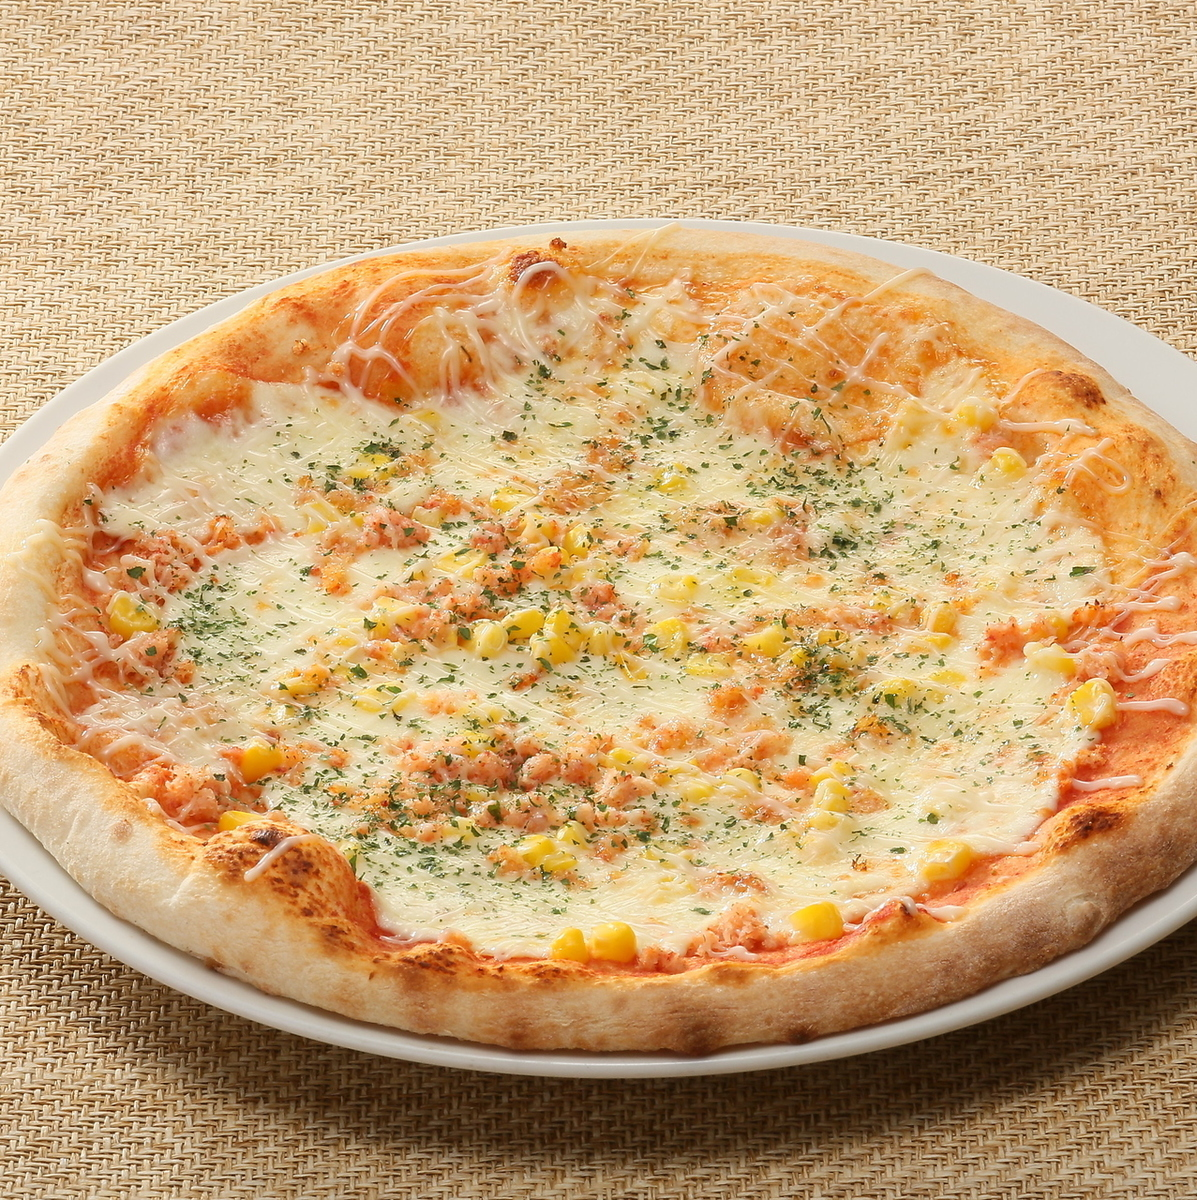 Mayo pizza of crab and corn